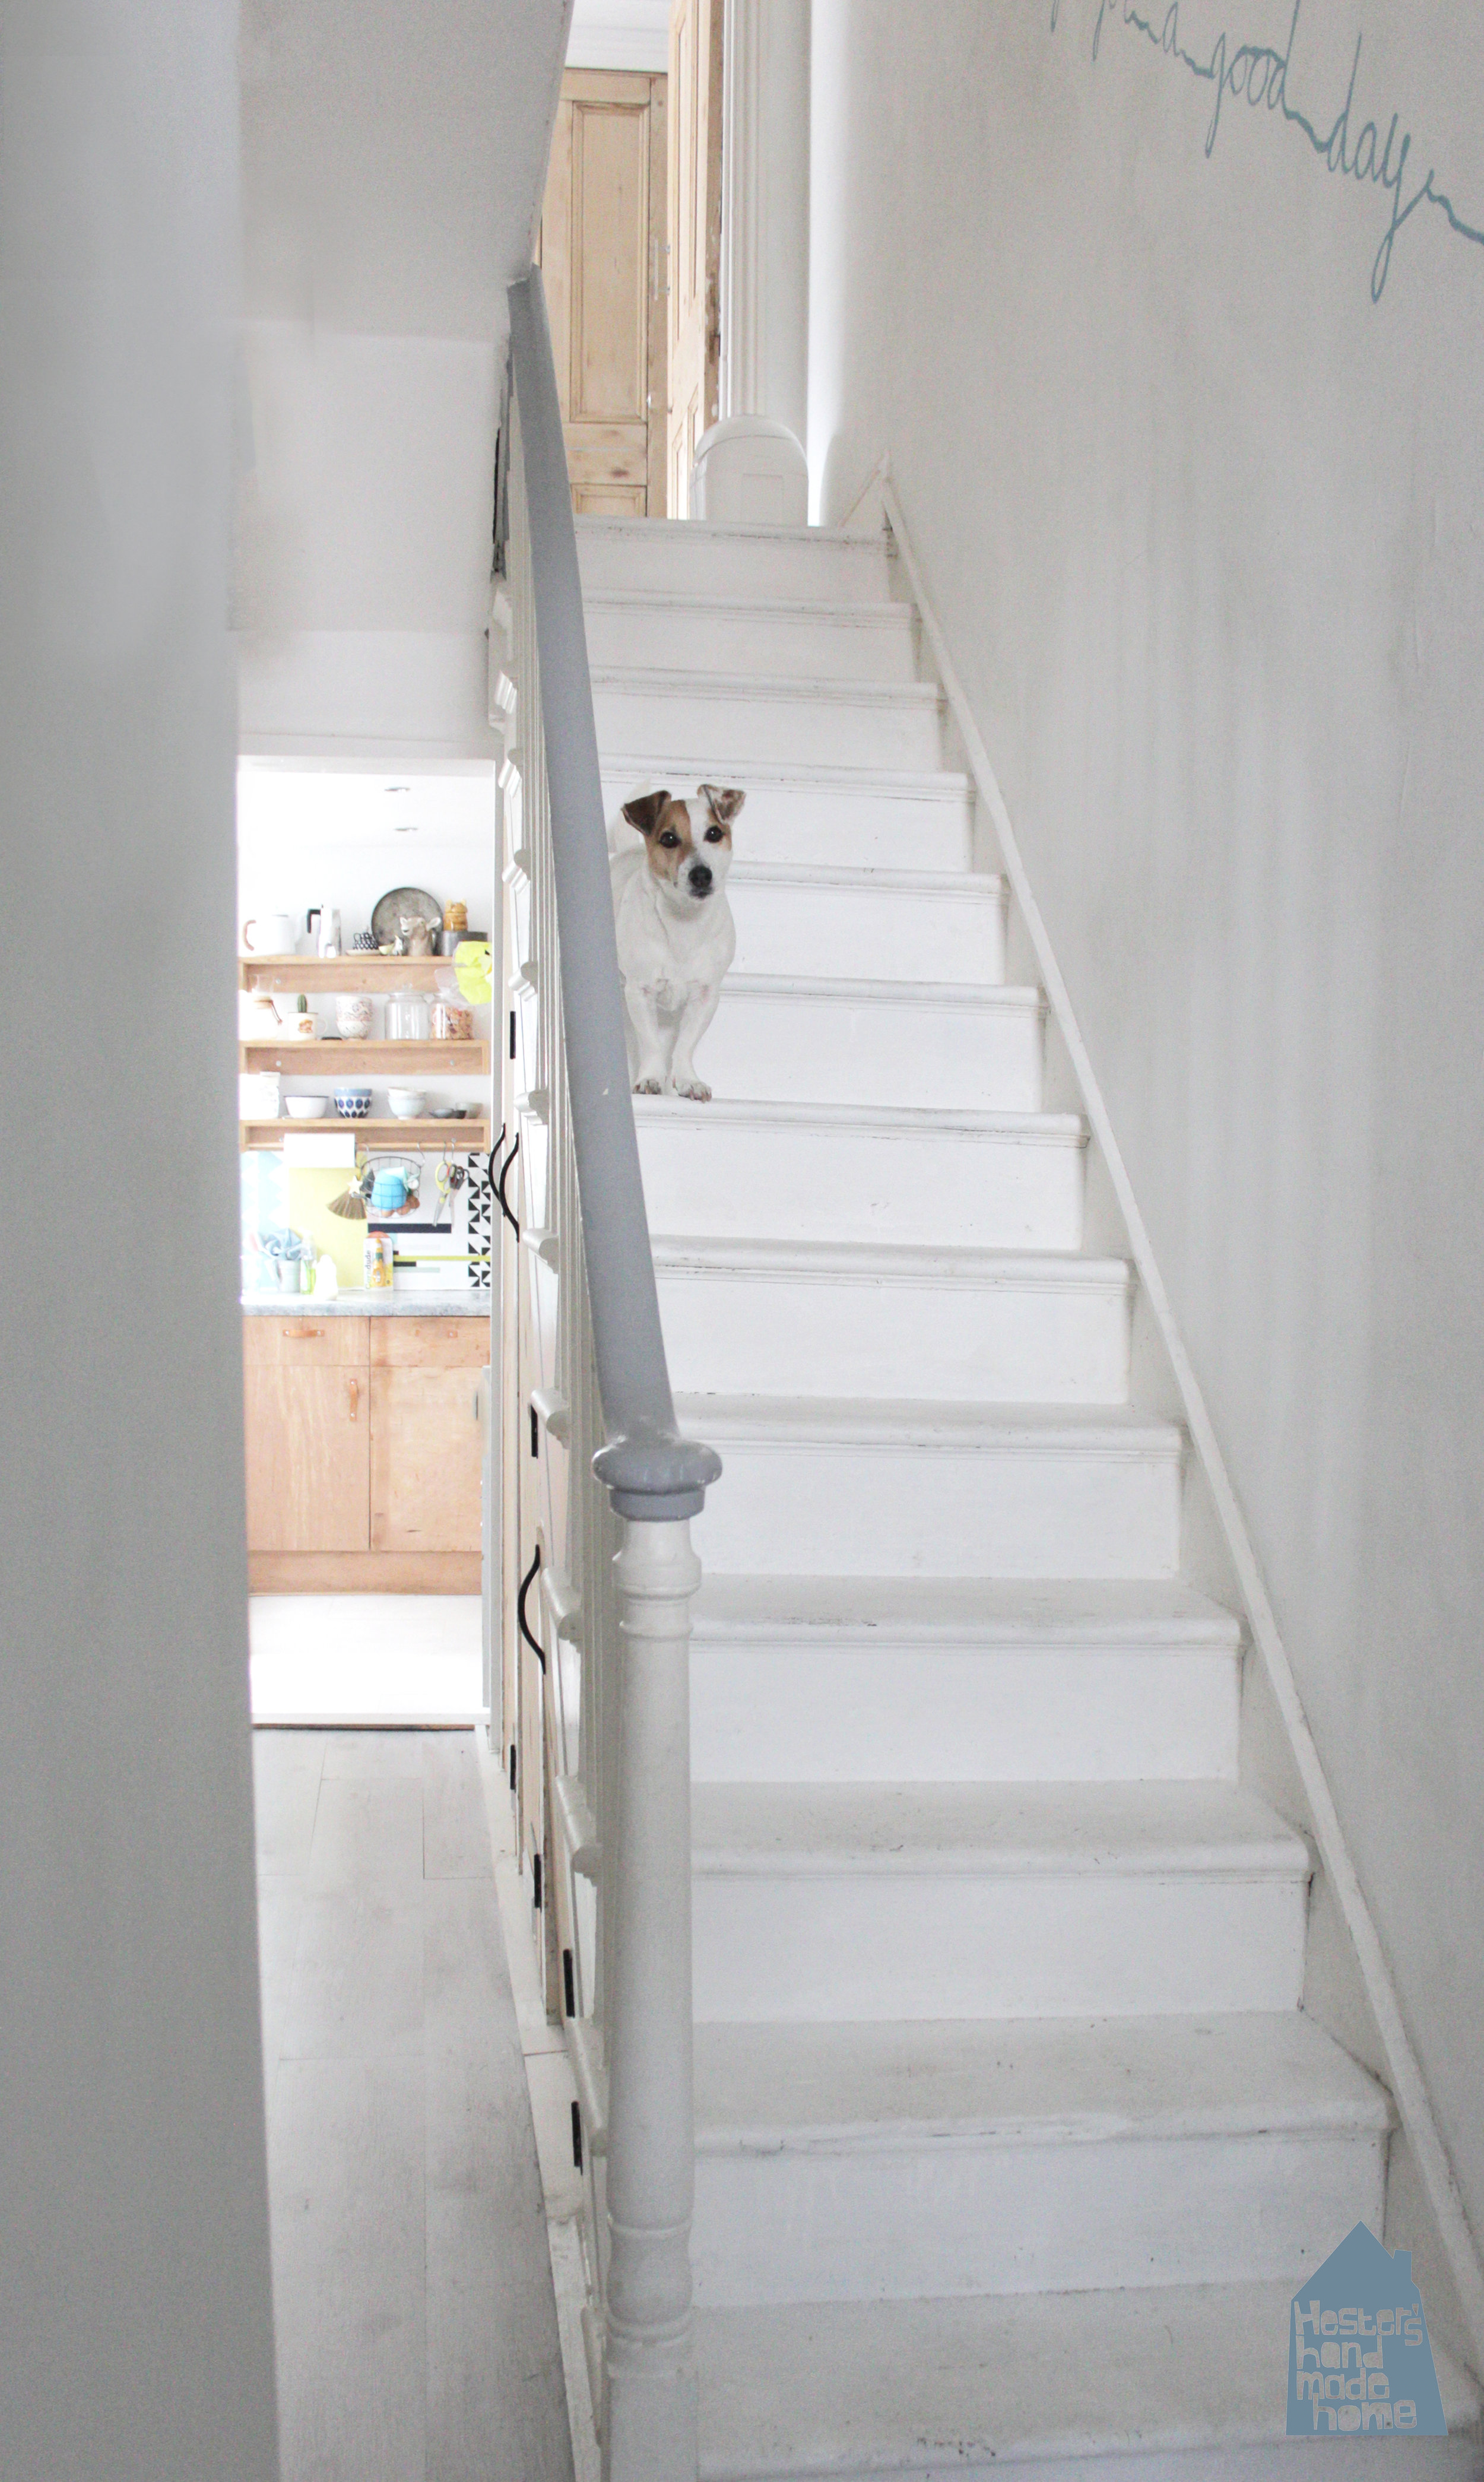 The stairs before